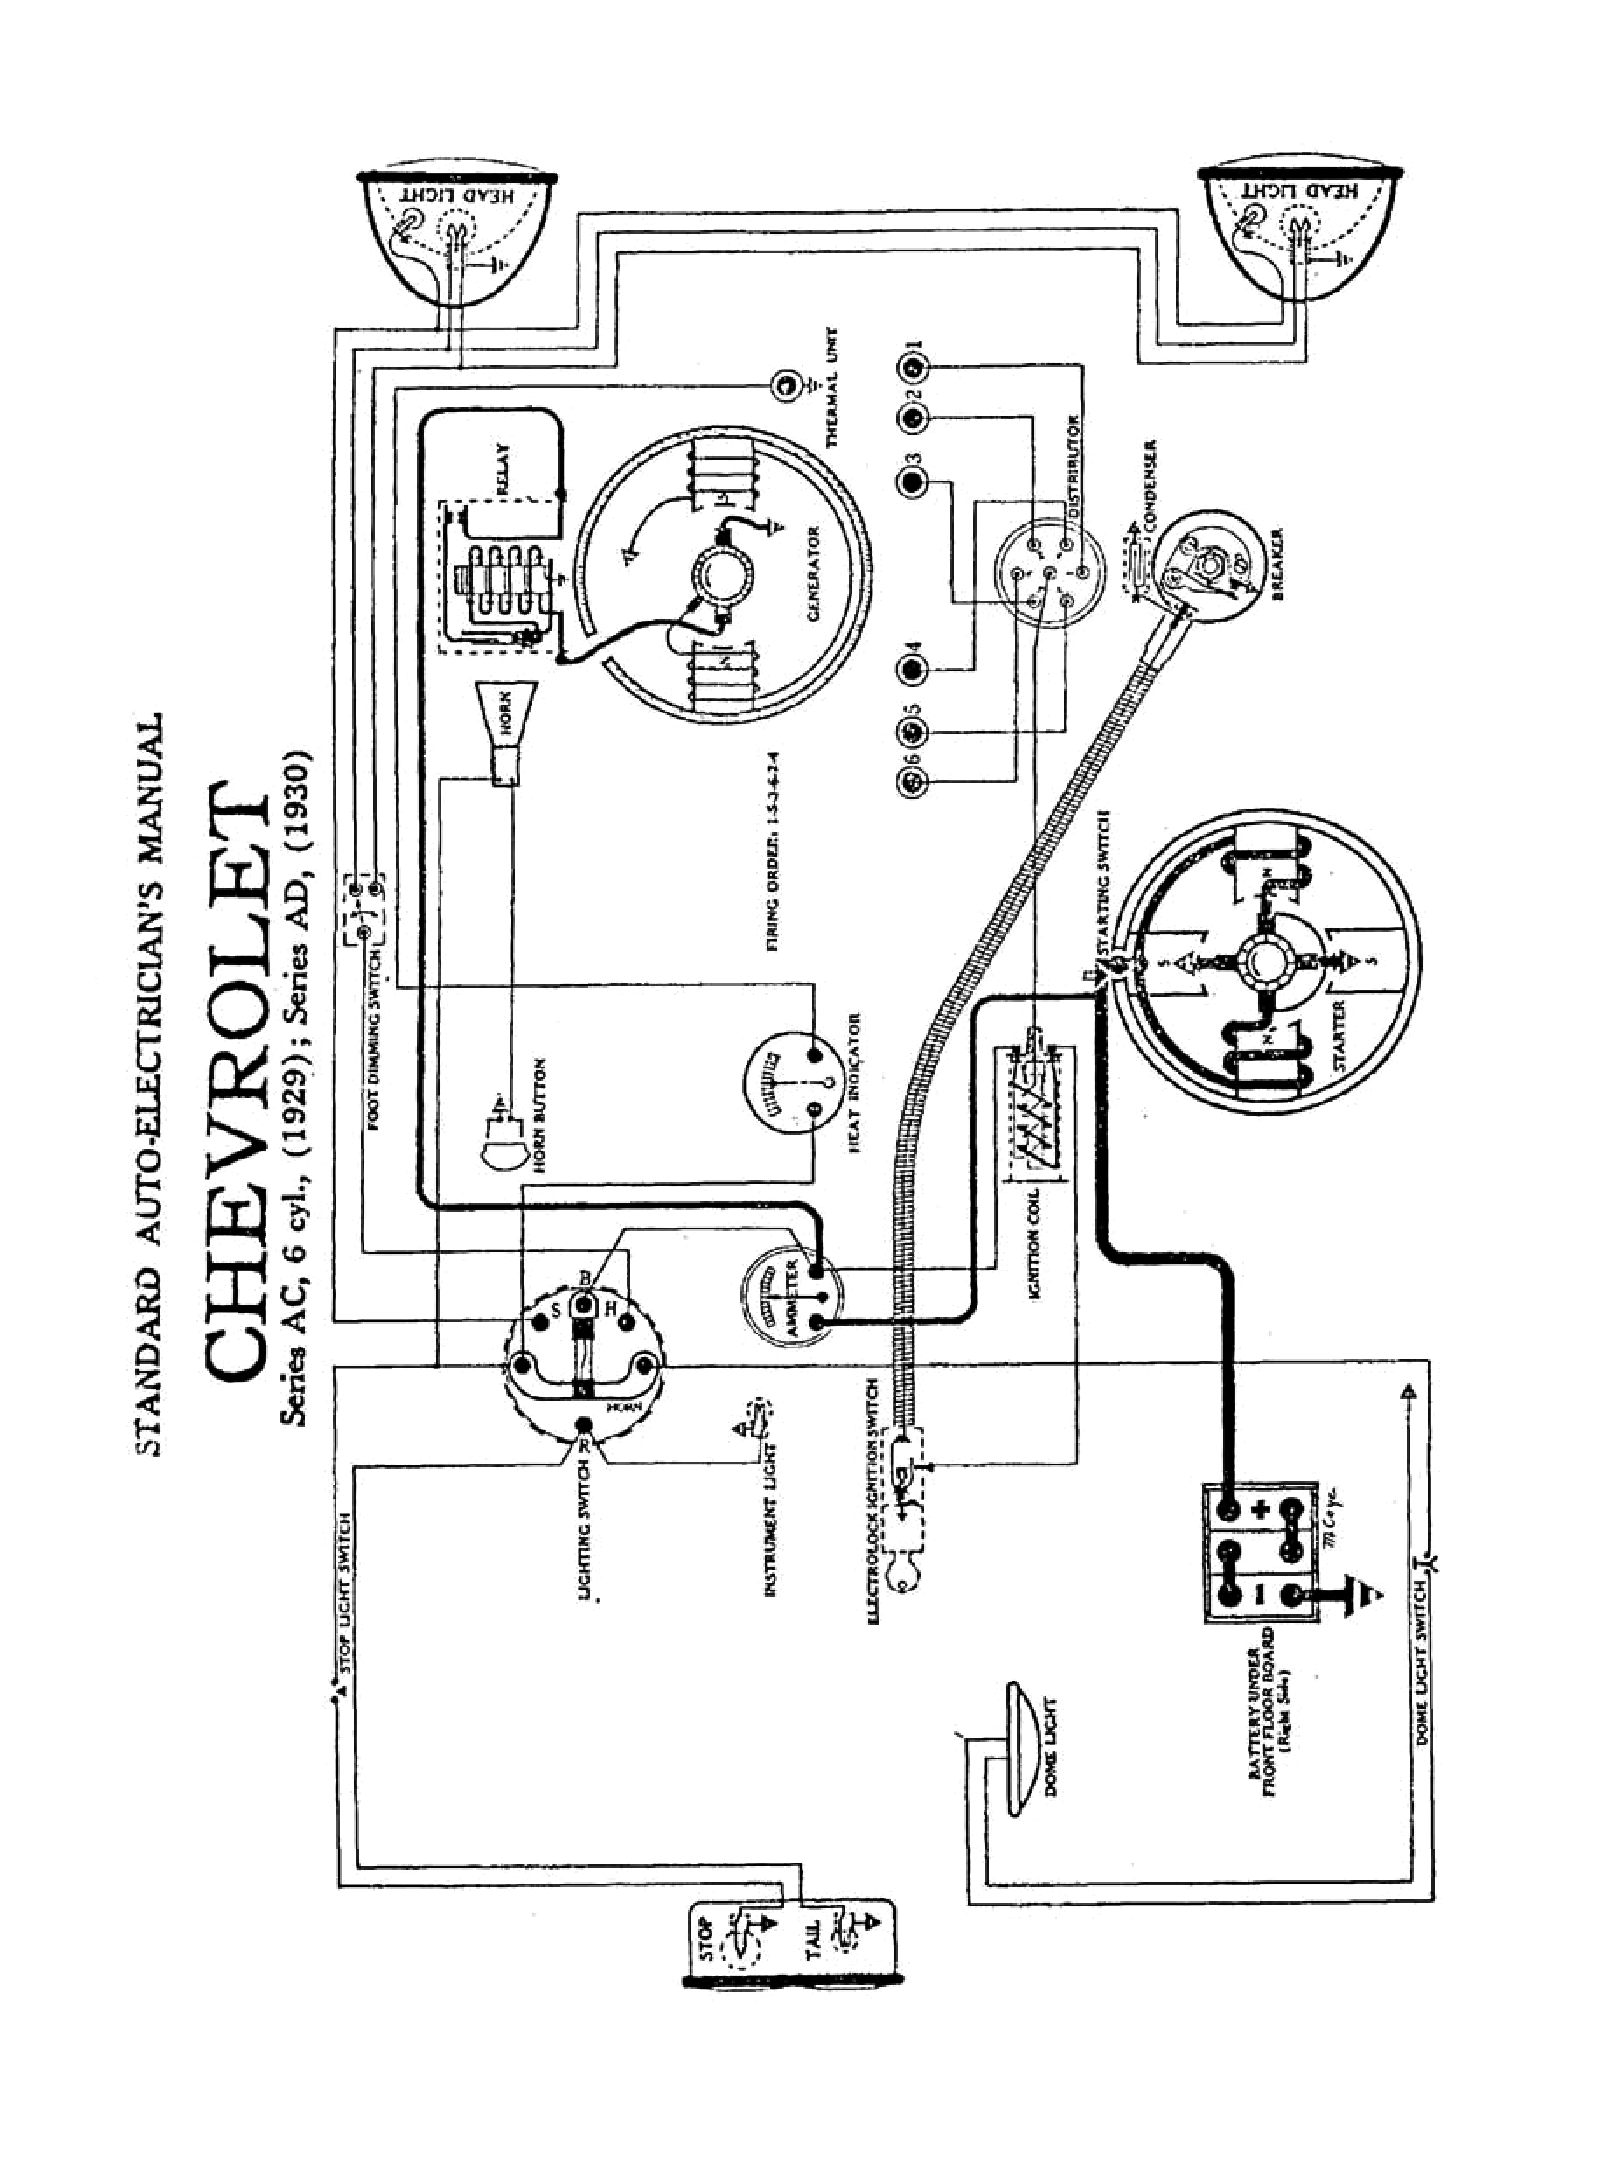 2930wiring chevy wiring diagrams modem wiring diagram at soozxer.org